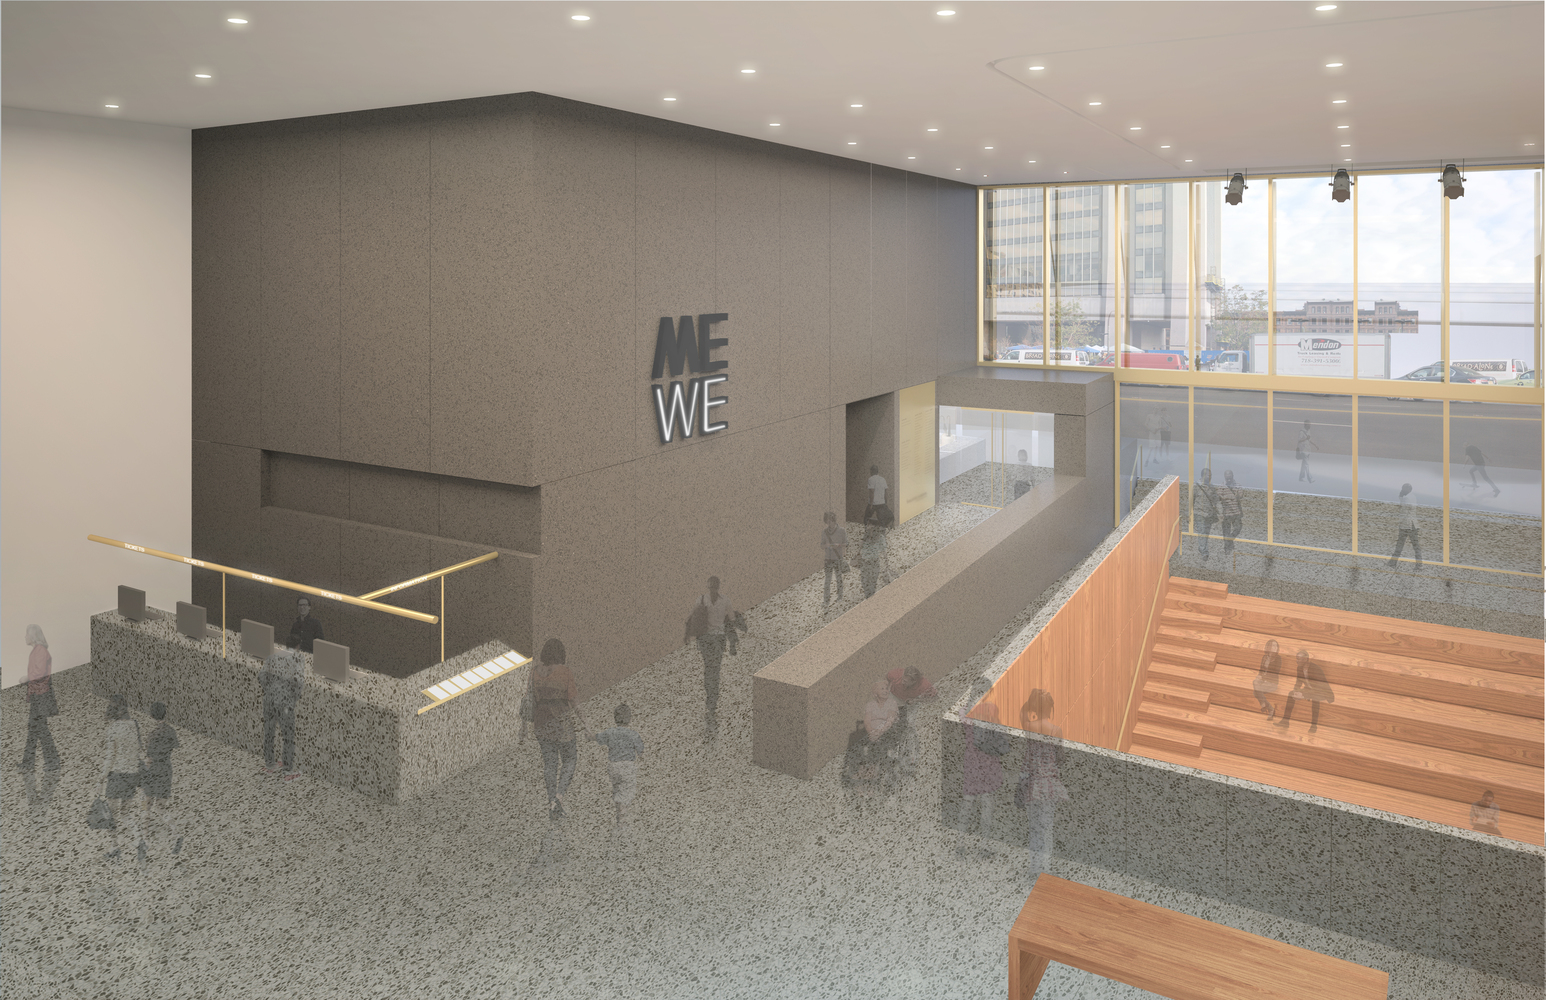 Adjaye Associates' Studio Museum Moves Forward Toward Fall Groundbreaking,Lobby. Image Courtesy of Adjaye Associates